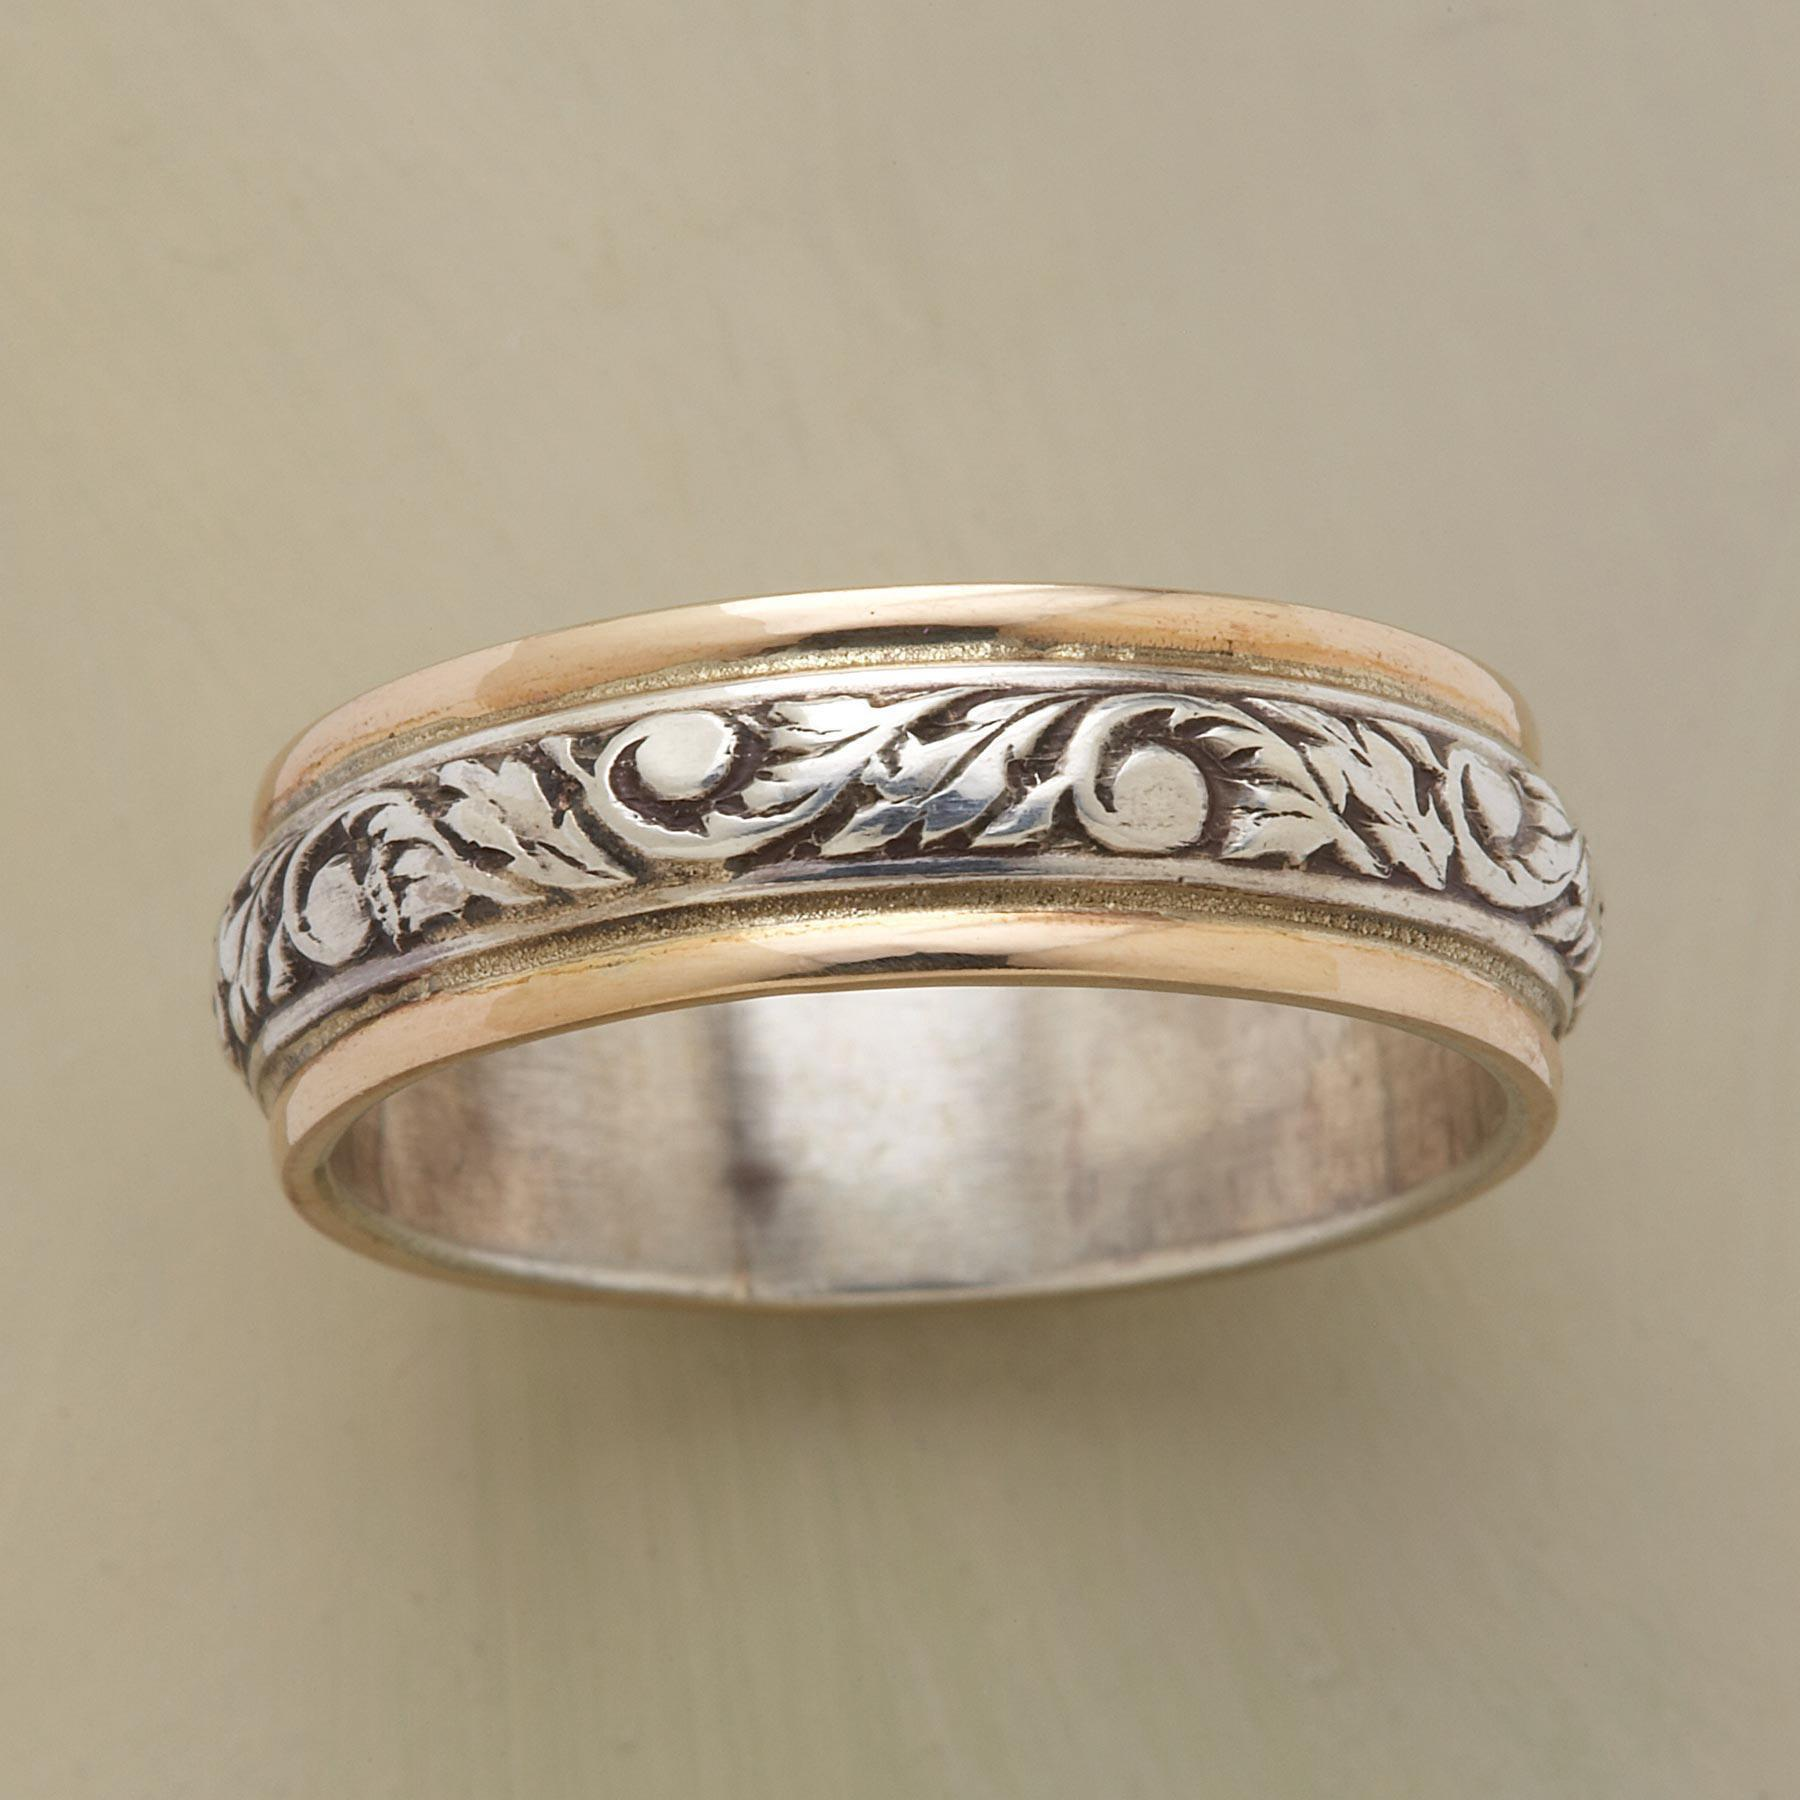 Silver & Gold Twining Vine Band Ring